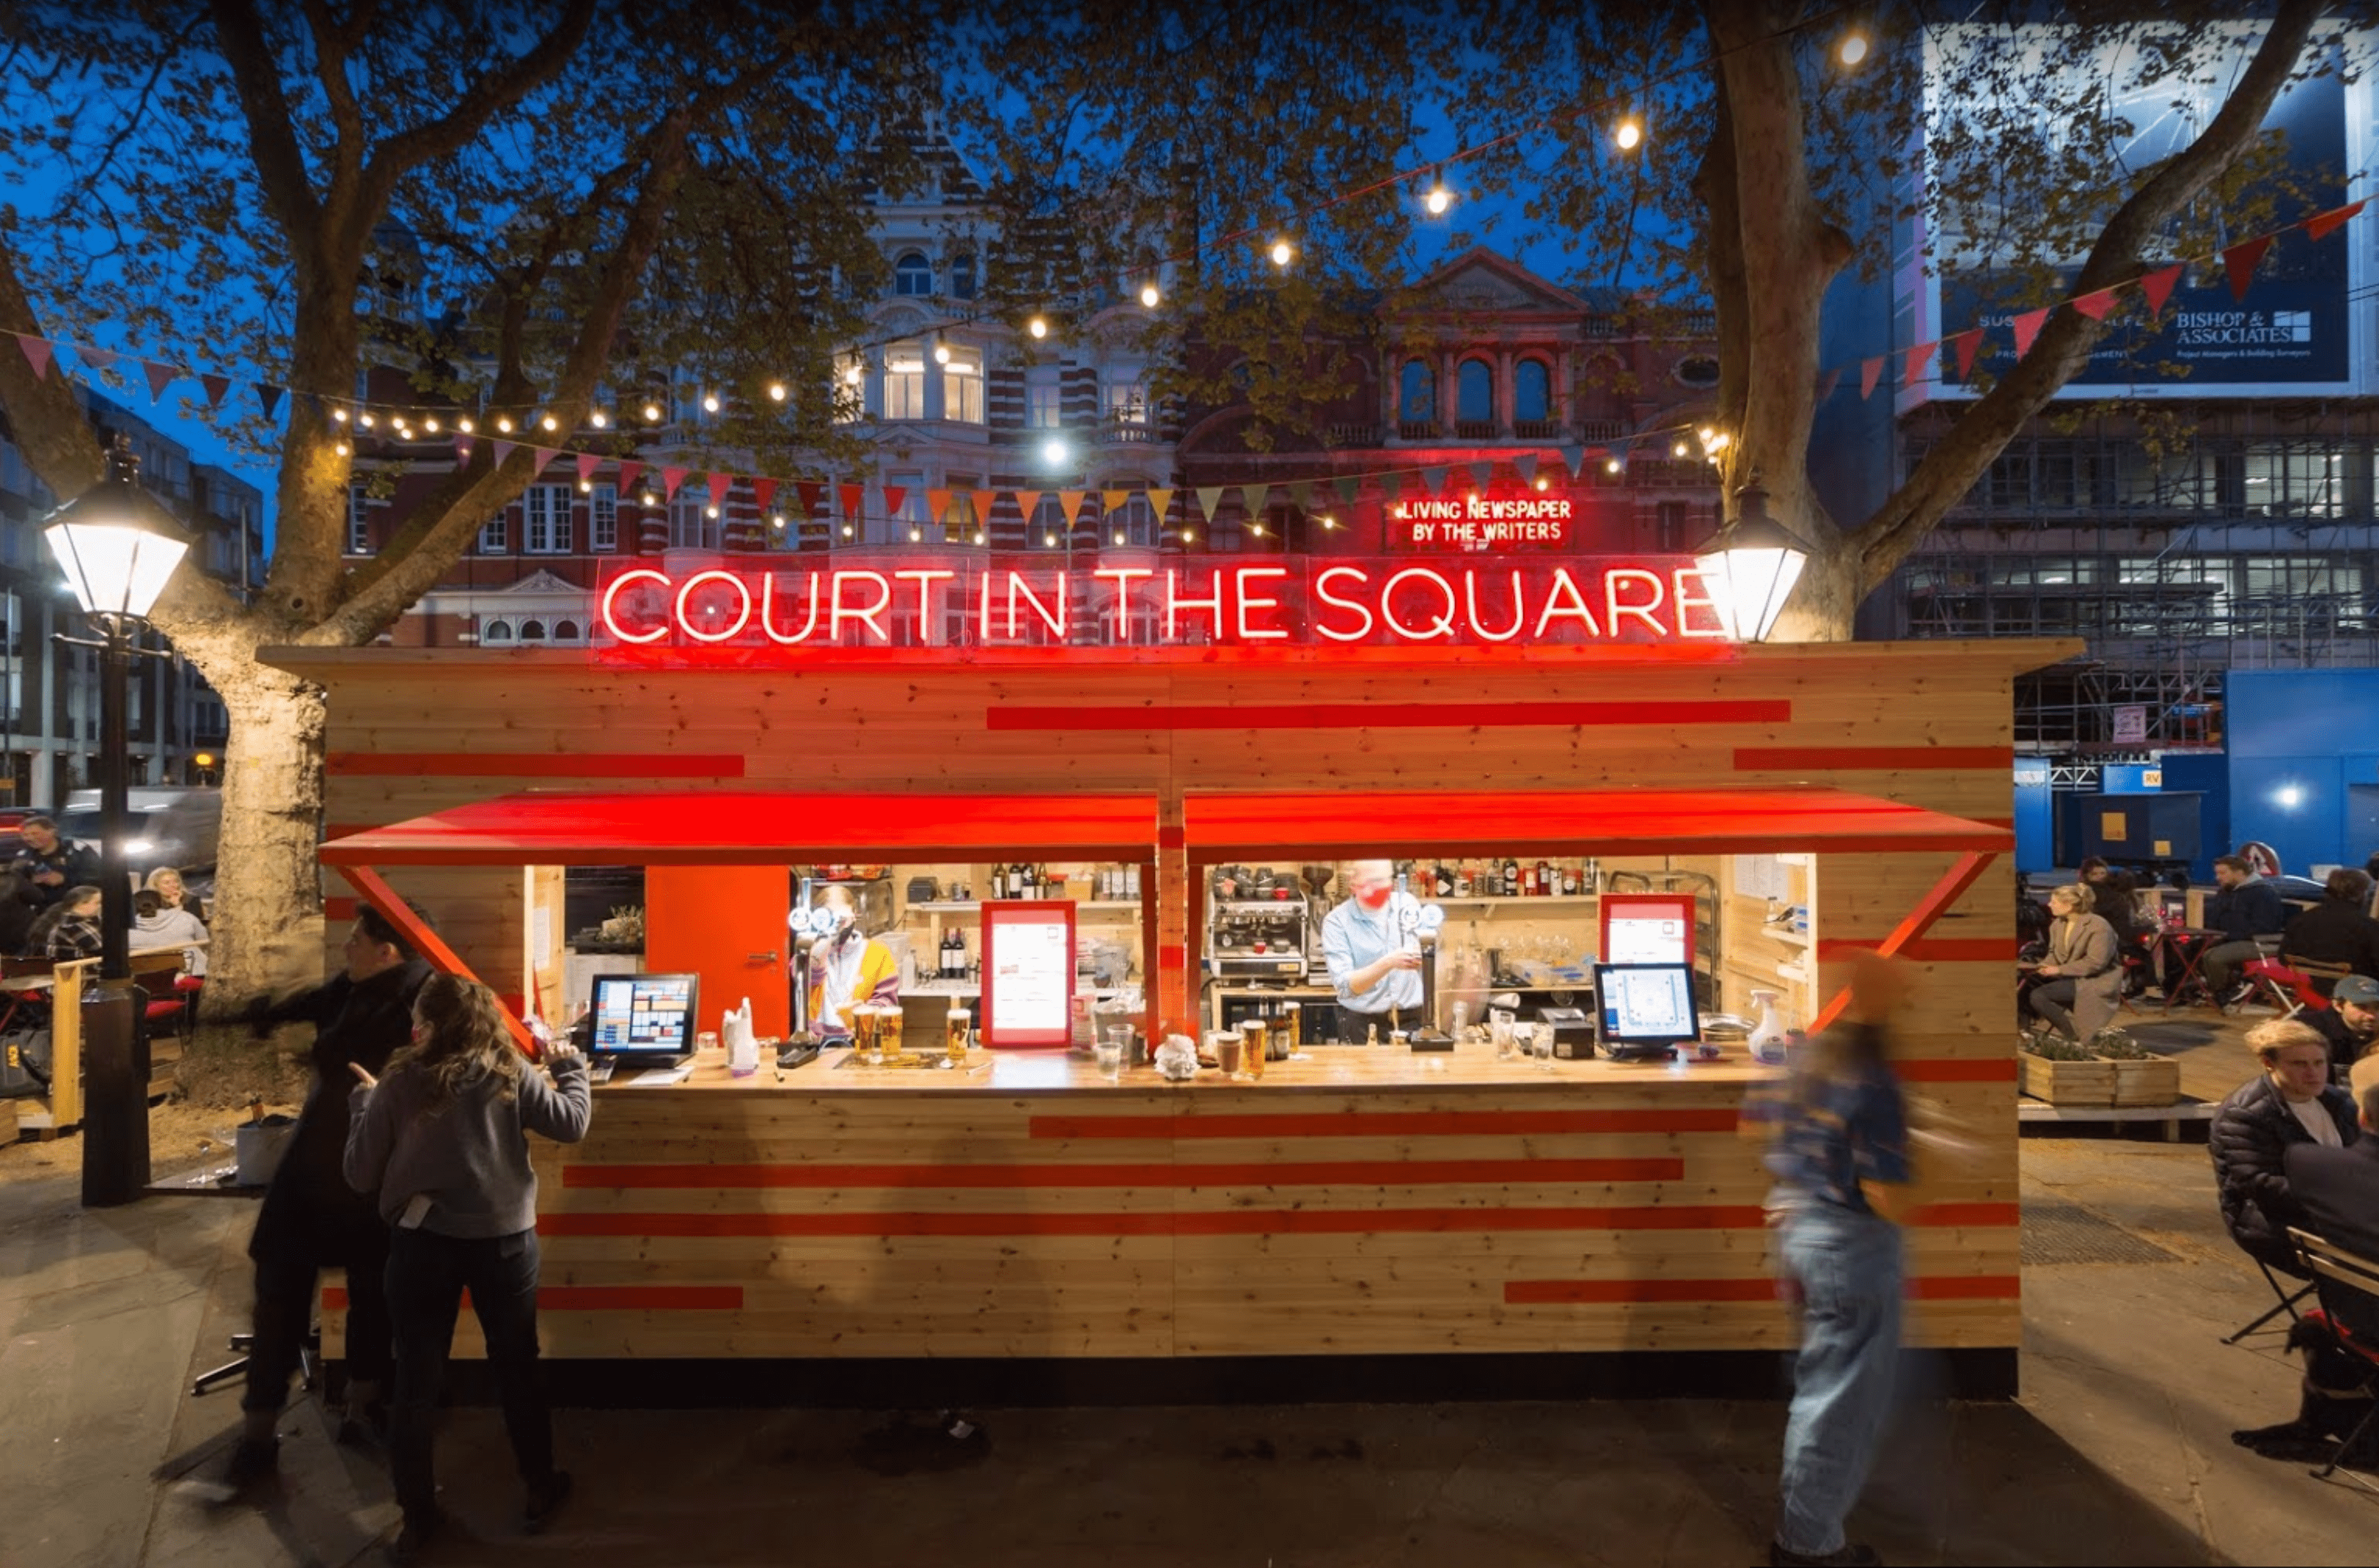 Court In The Square in London